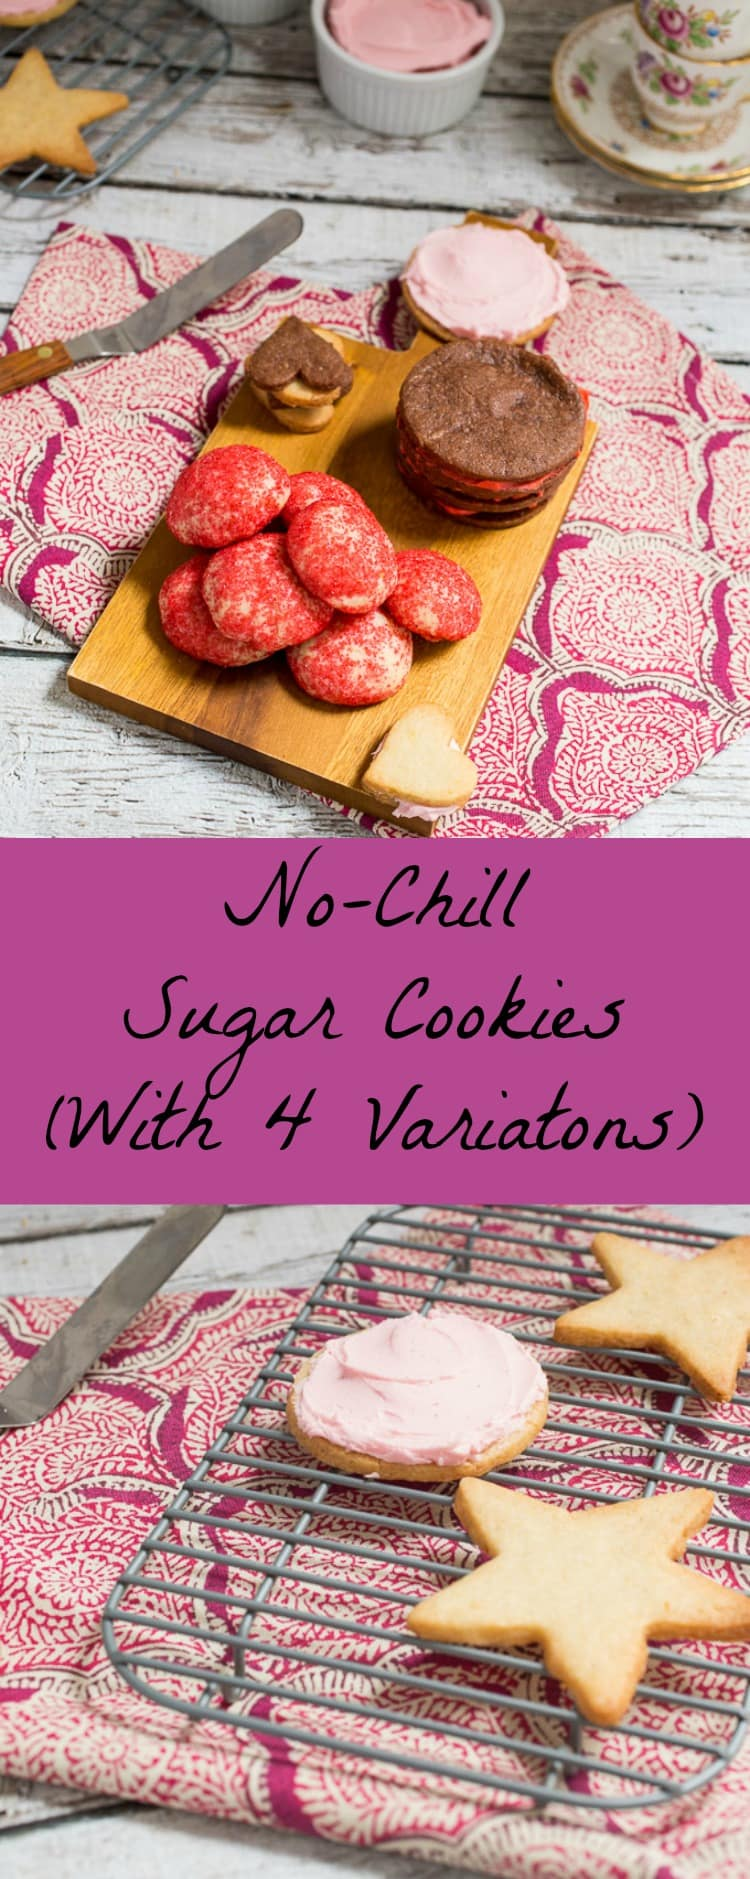 4 Variations on a Sugar Cookie | girlinthelittleredkitchen.com